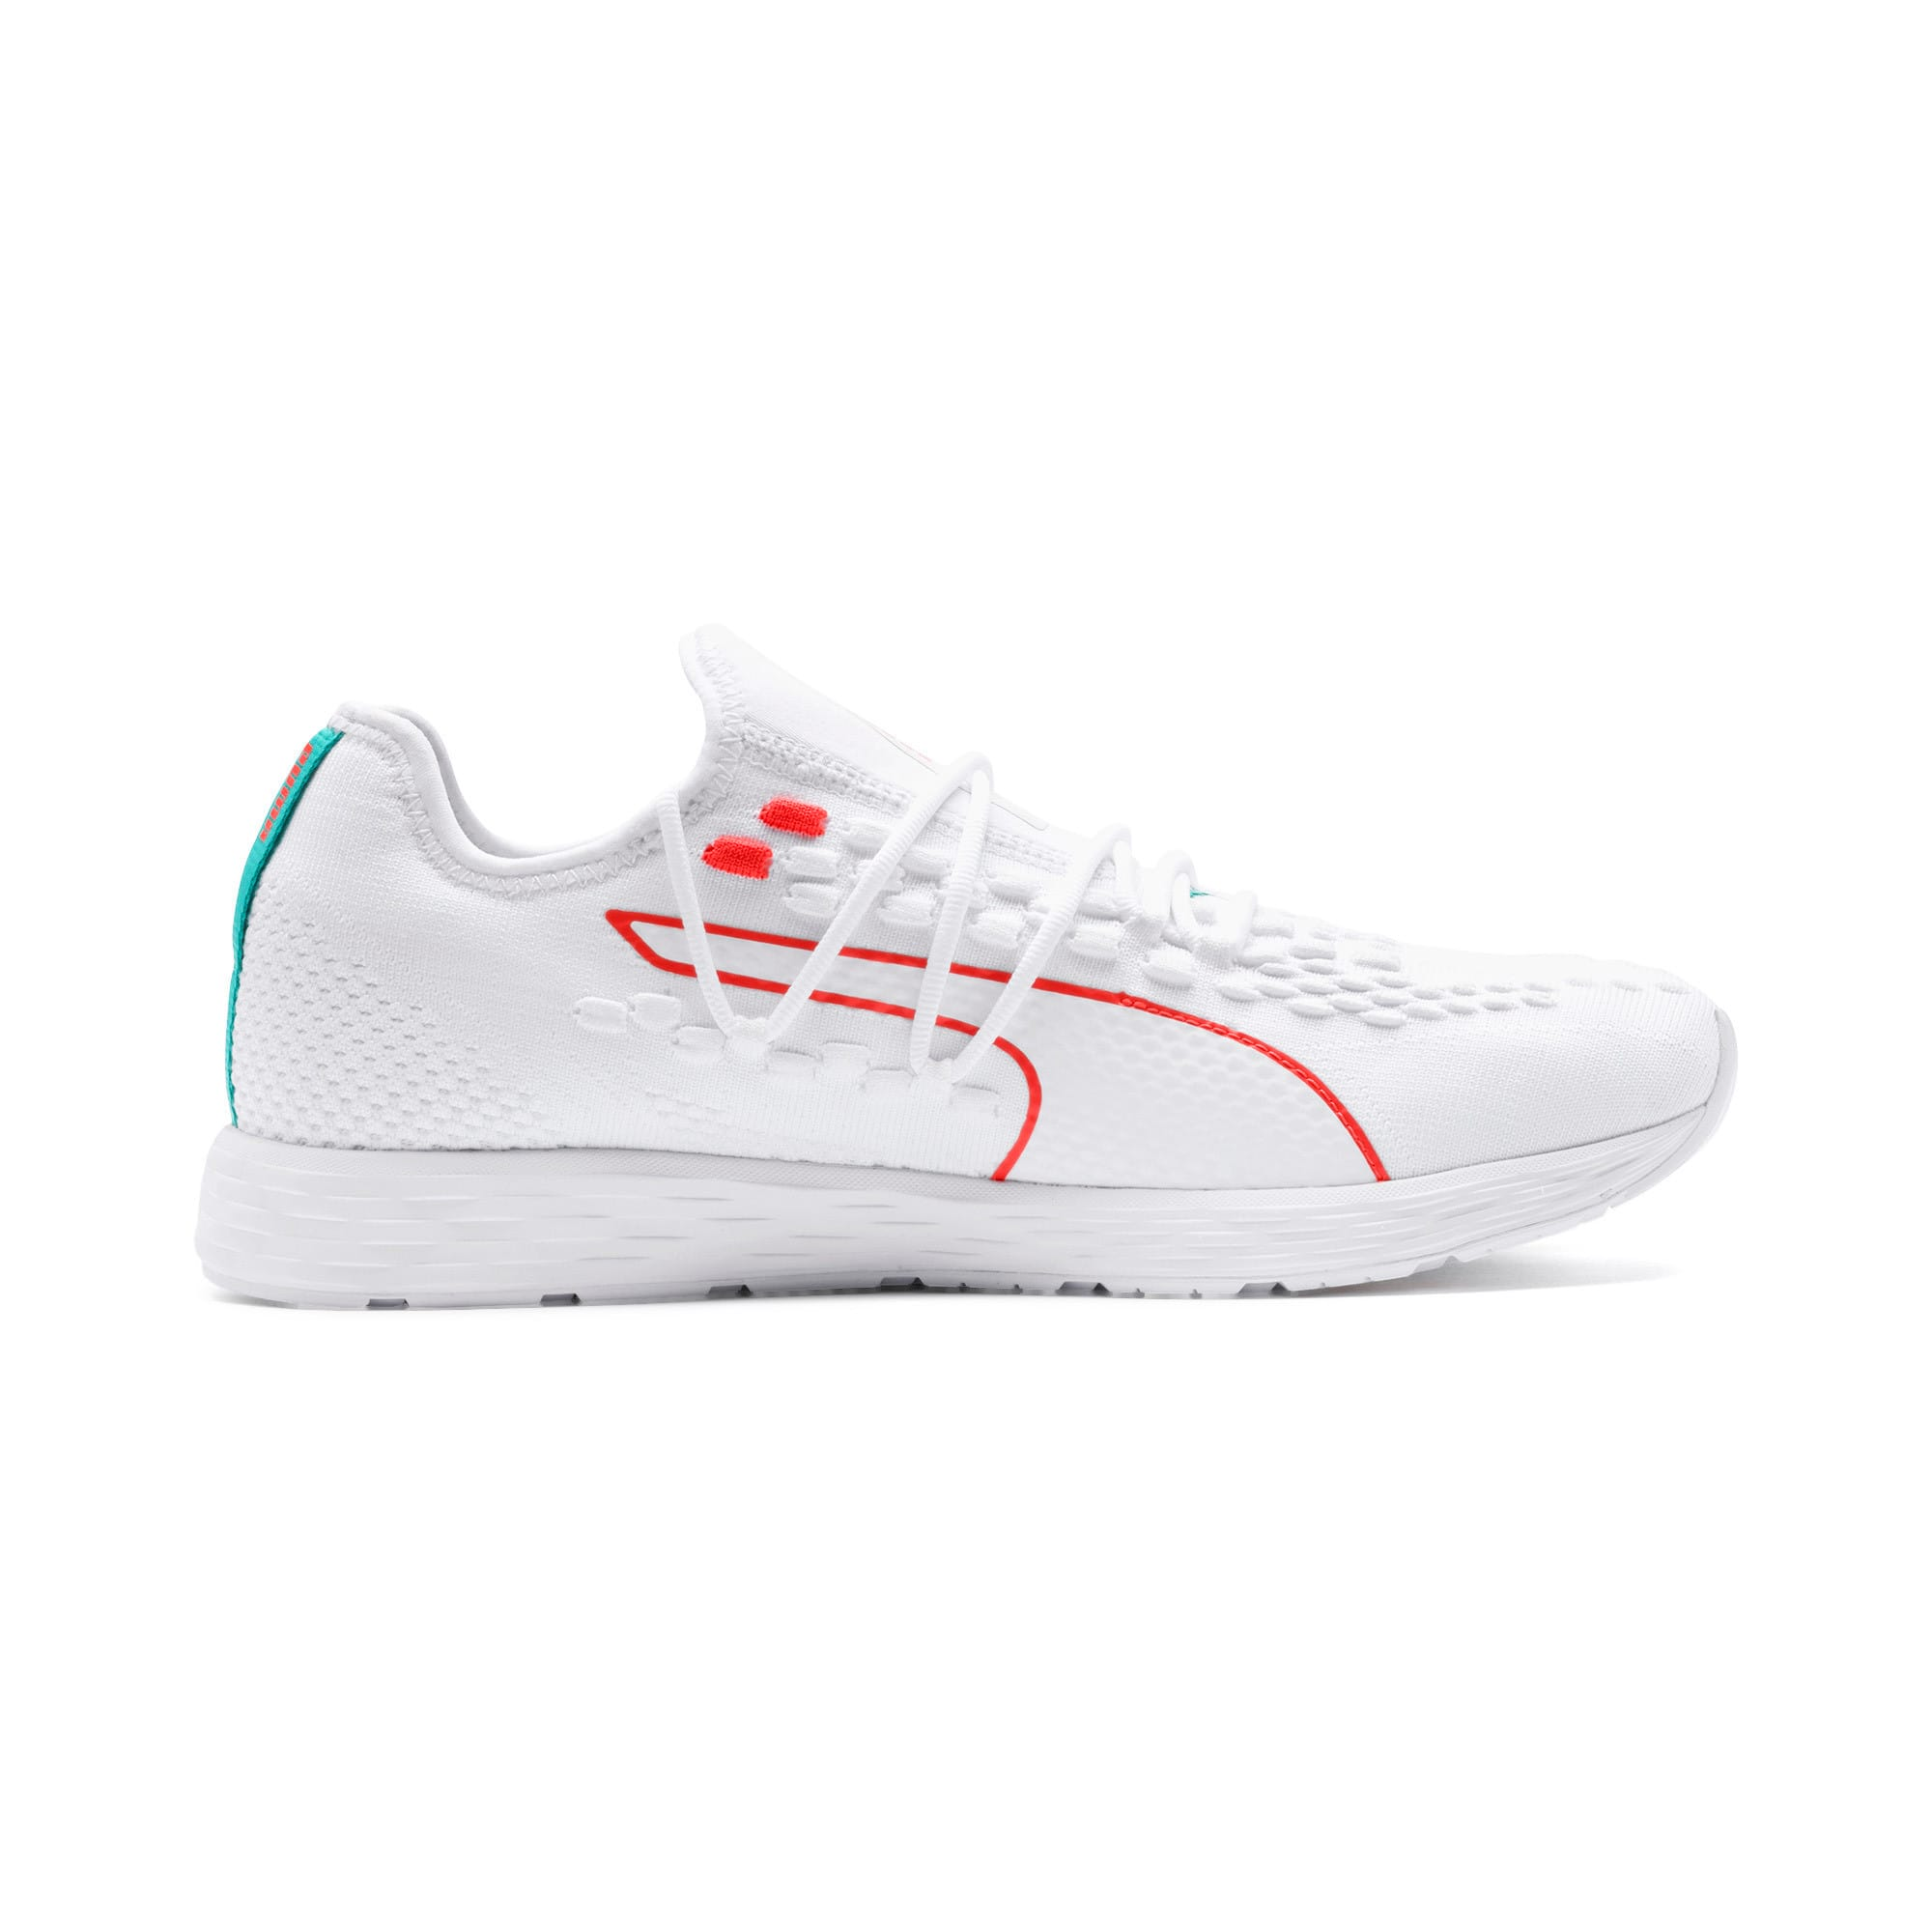 Thumbnail 6 of SPEED RACER Running Shoes, White-Nrgy Red-Turquoise, medium